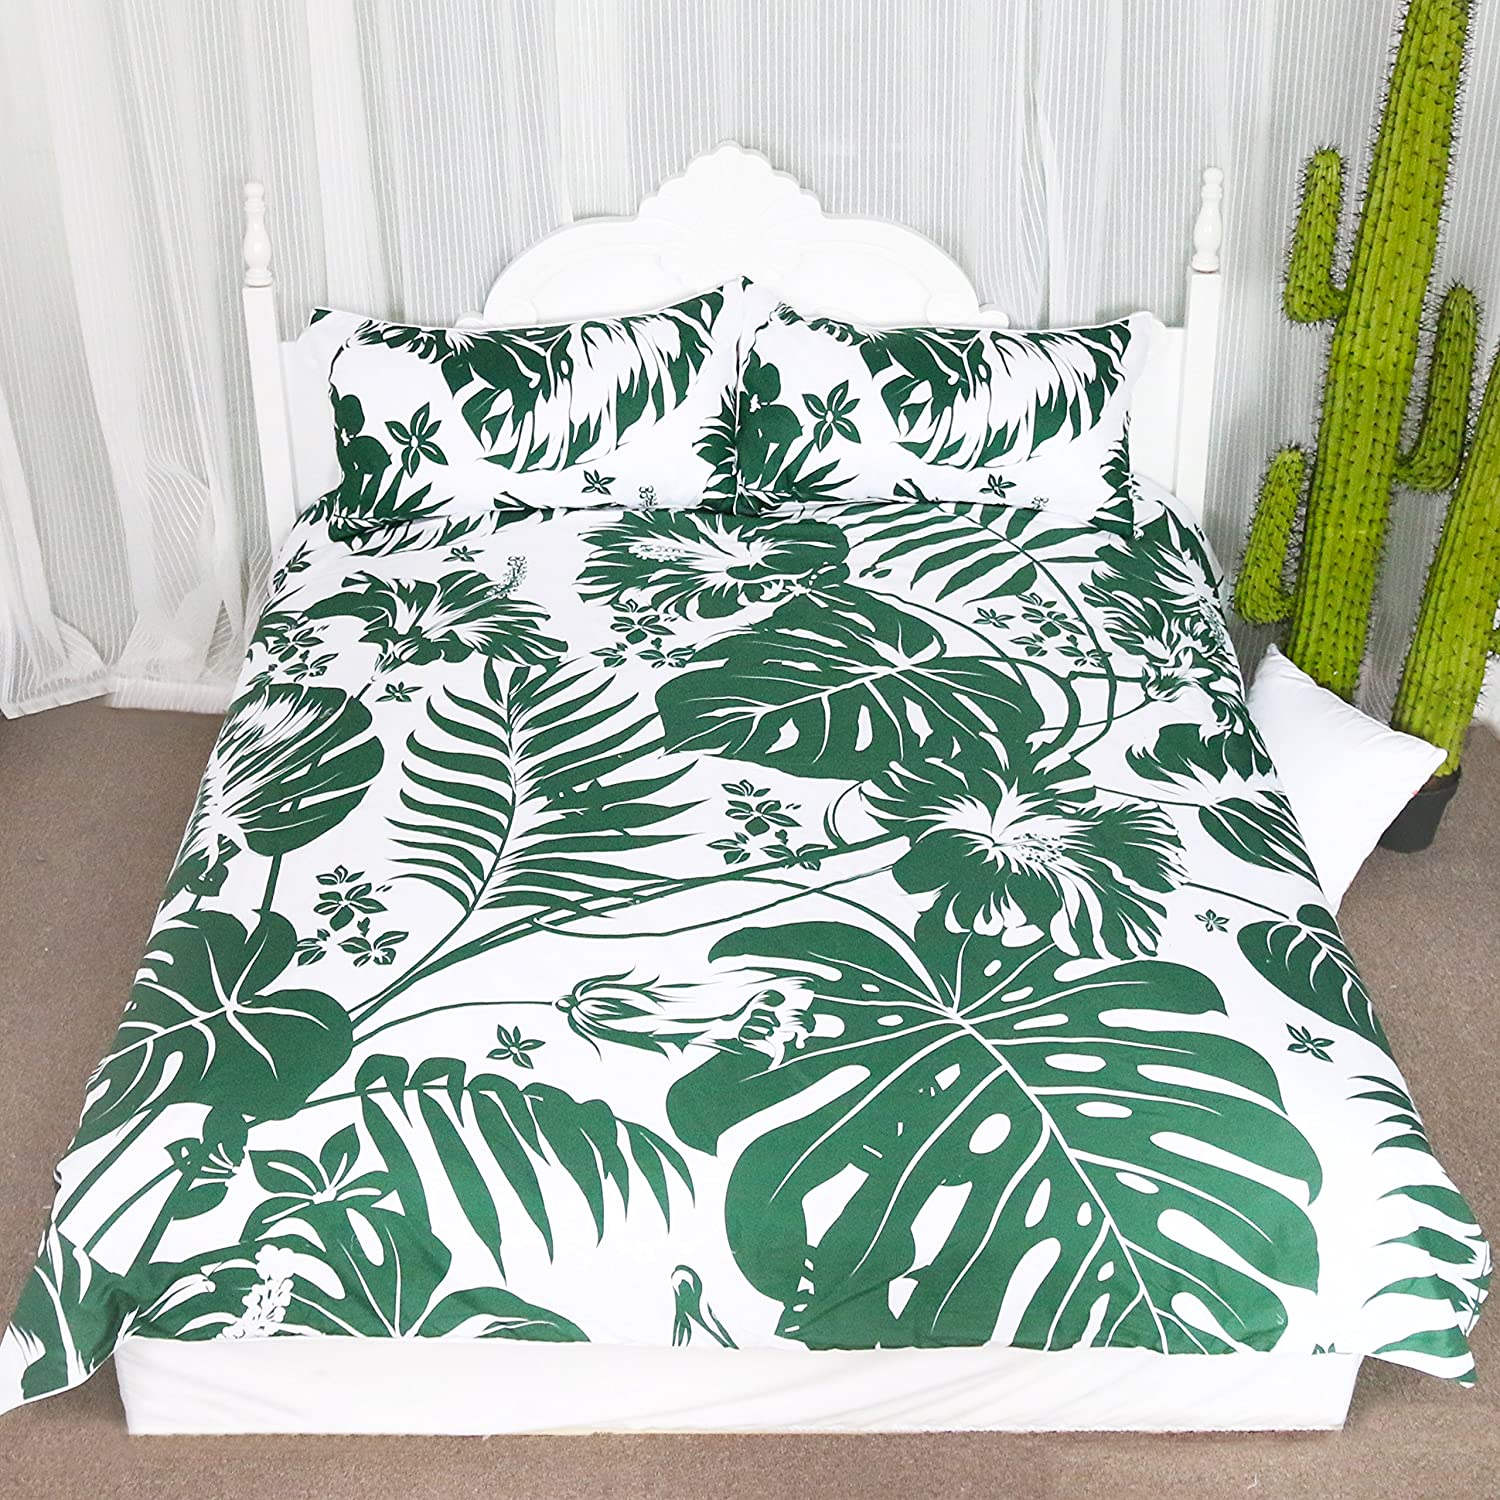 3 Pieces Lightweight Microfiber Duvet Cover Set Monstera Deliciosa Hawaiian Island Tropics Leaves Bedding sets